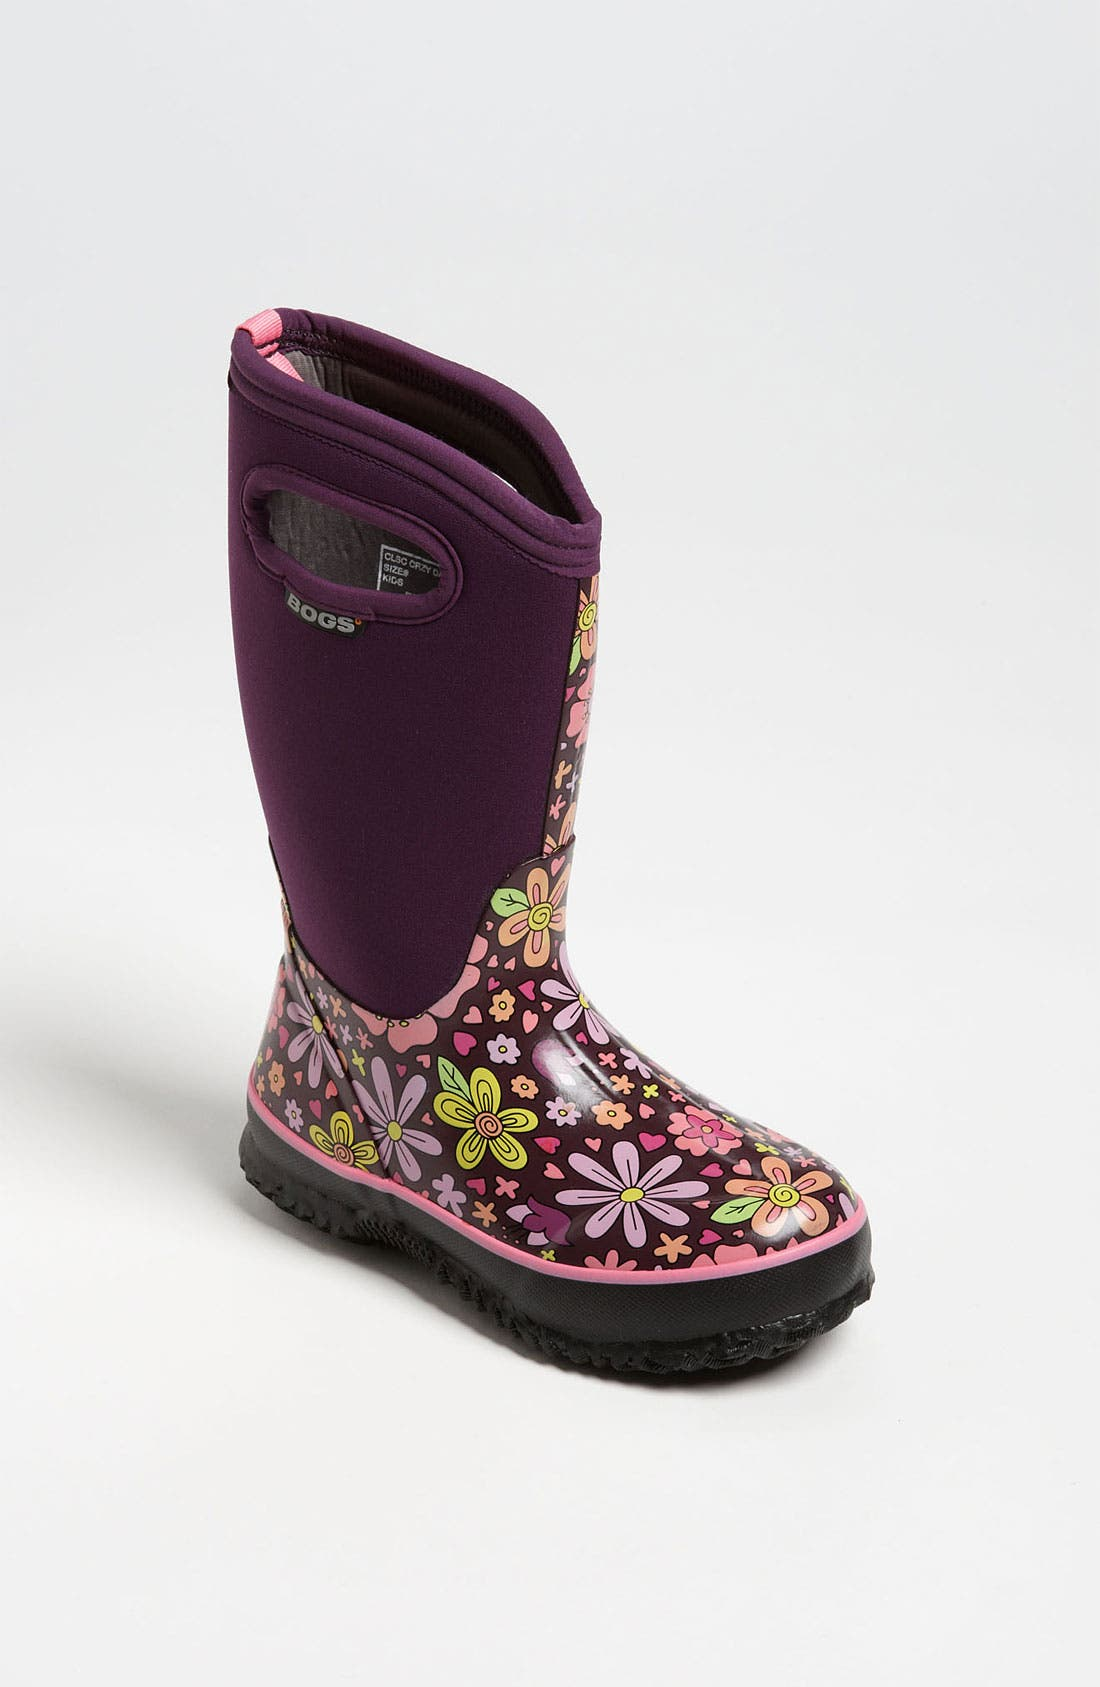 Alternate Image 1 Selected - Bogs 'Classic High Crazy Daisy' Snow Boot (Toddler, Little Kid & Big Kid)